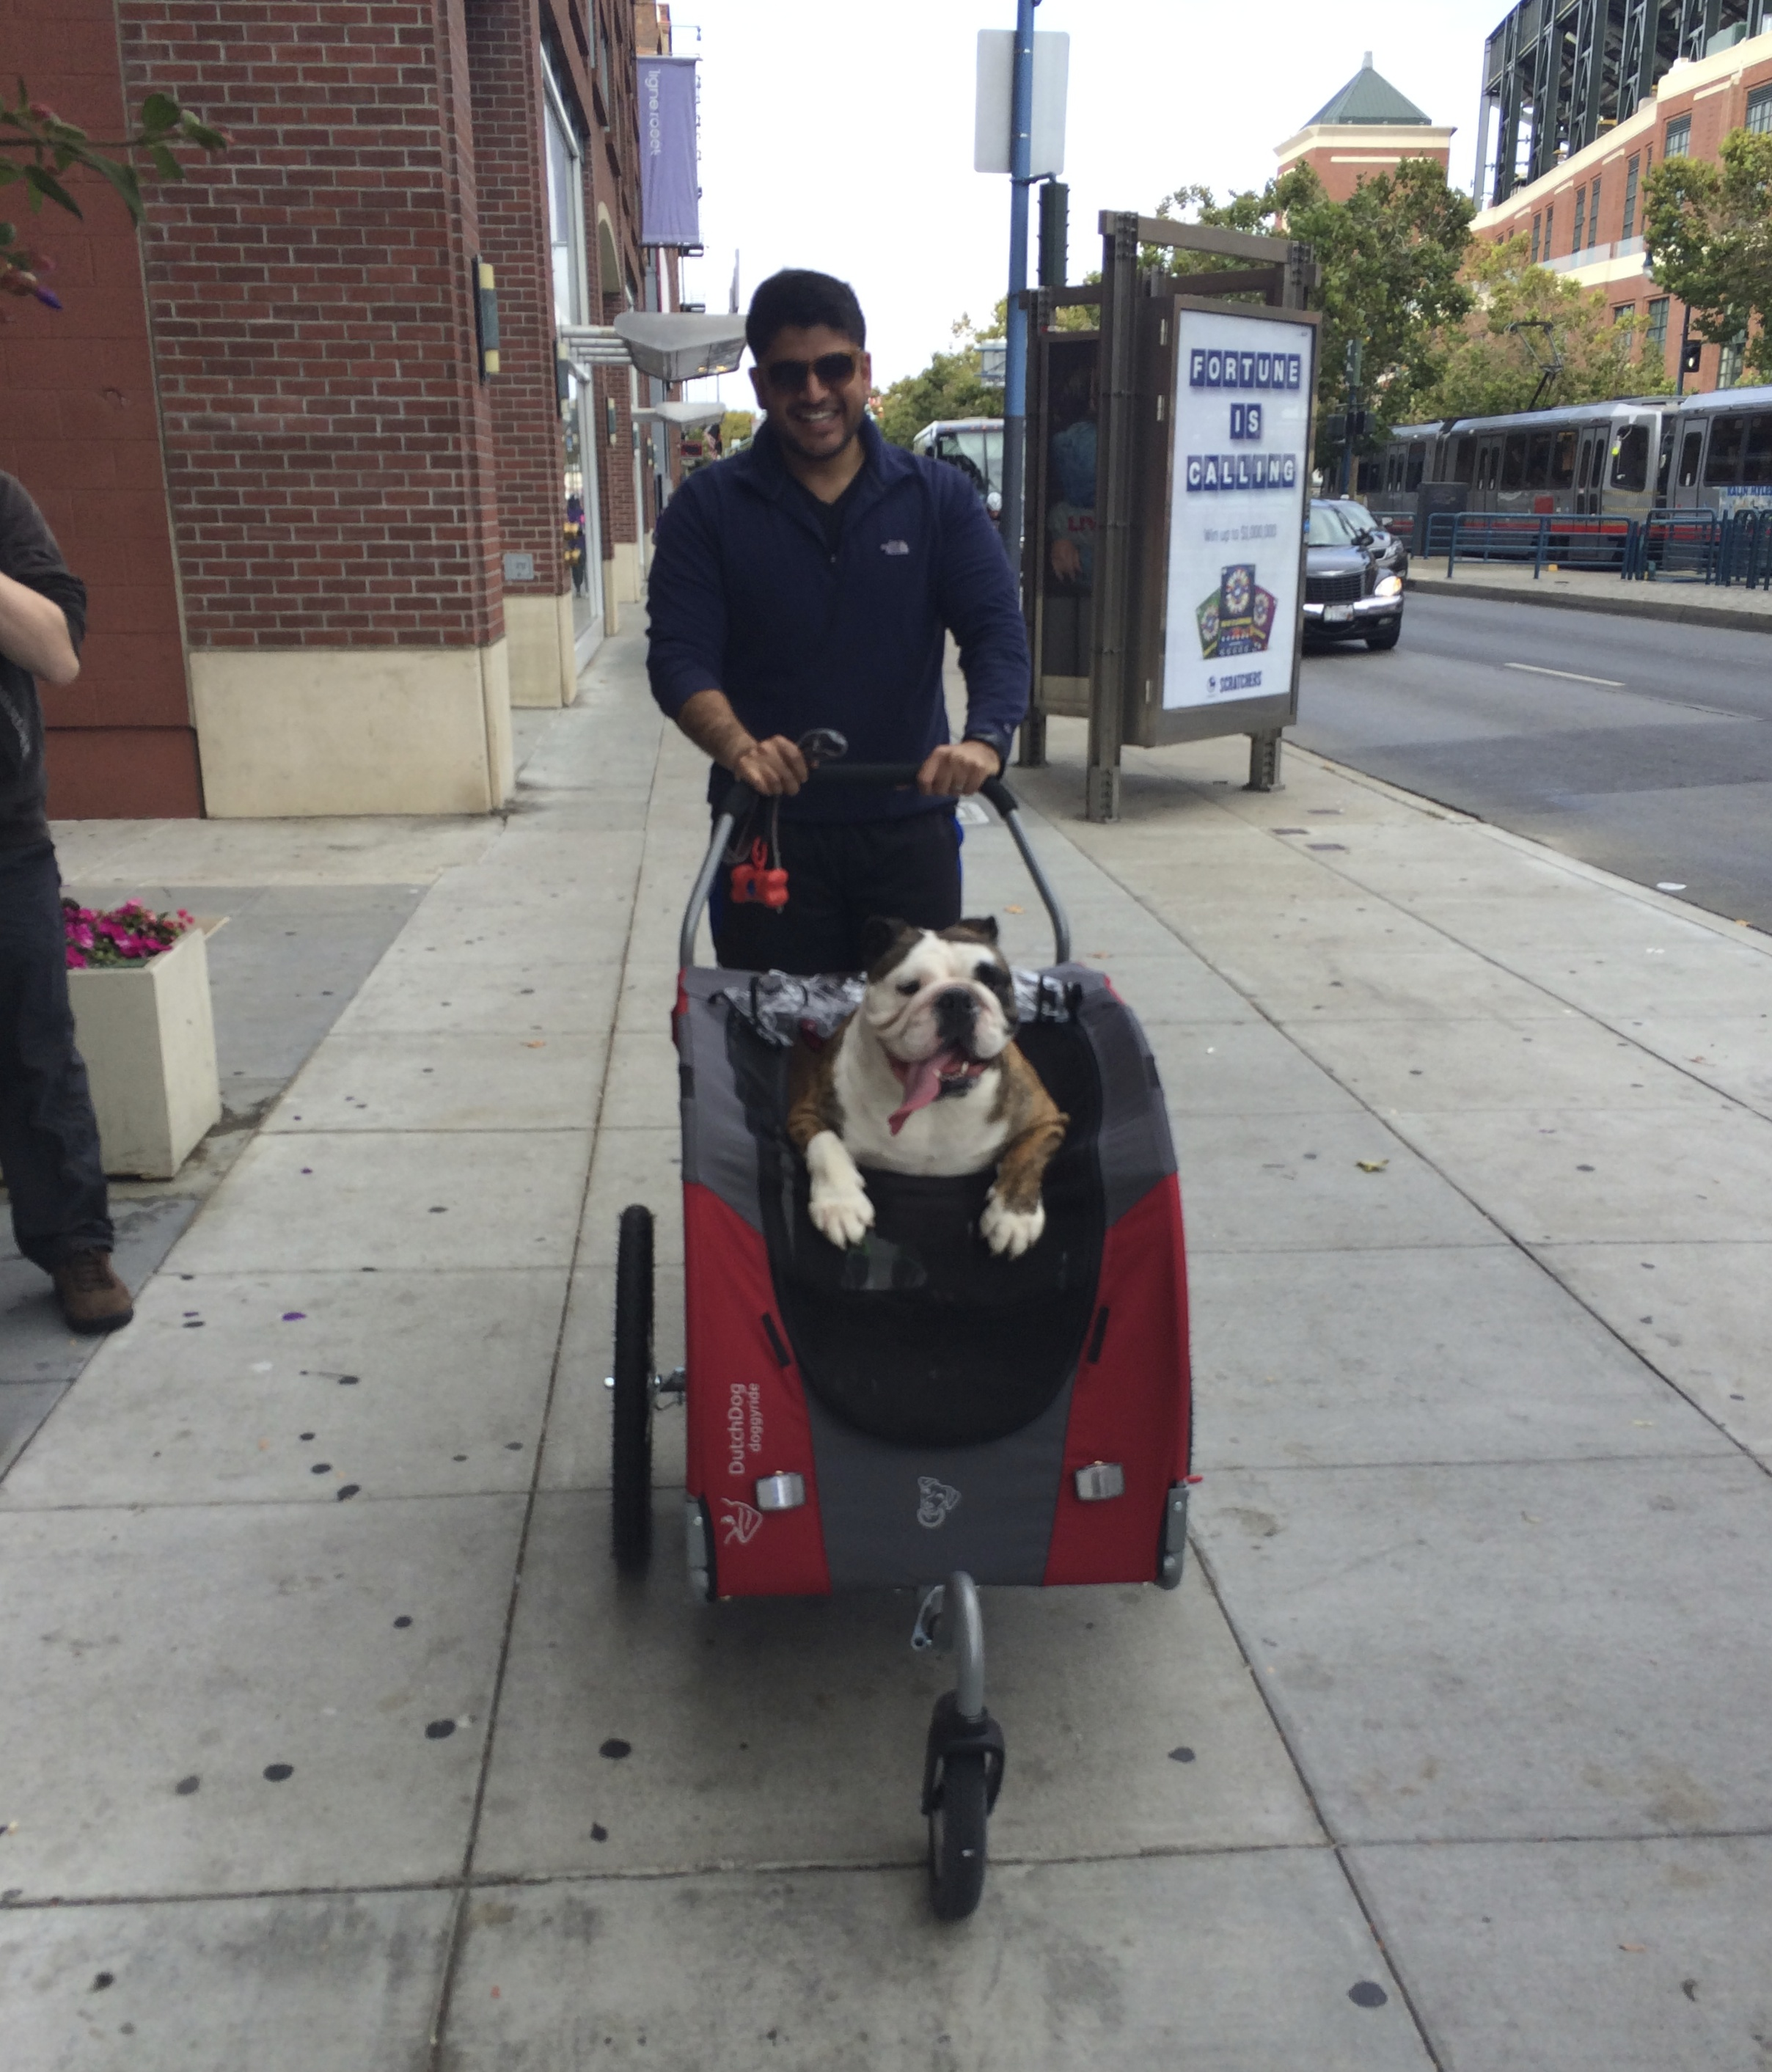 English Bulldog in a Stroller